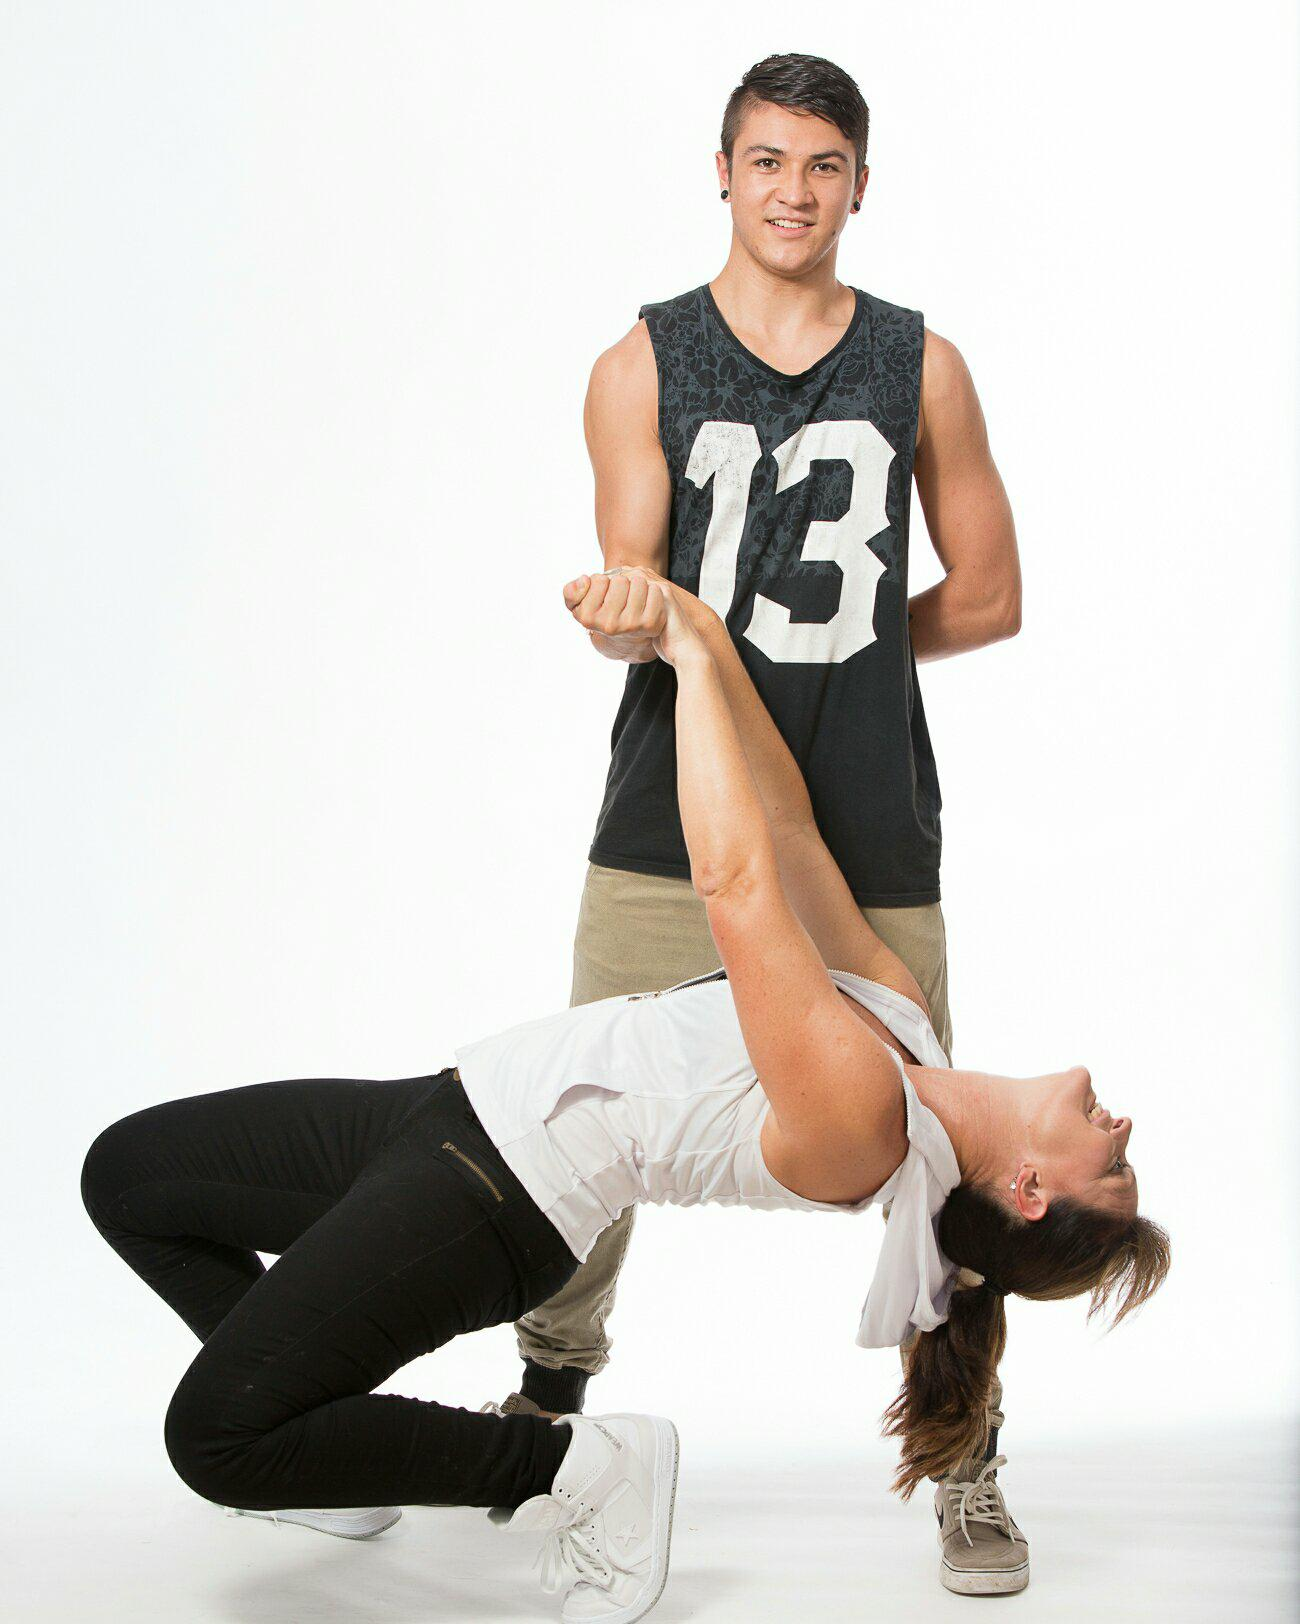 Em & Zac - drop - white background.jpg